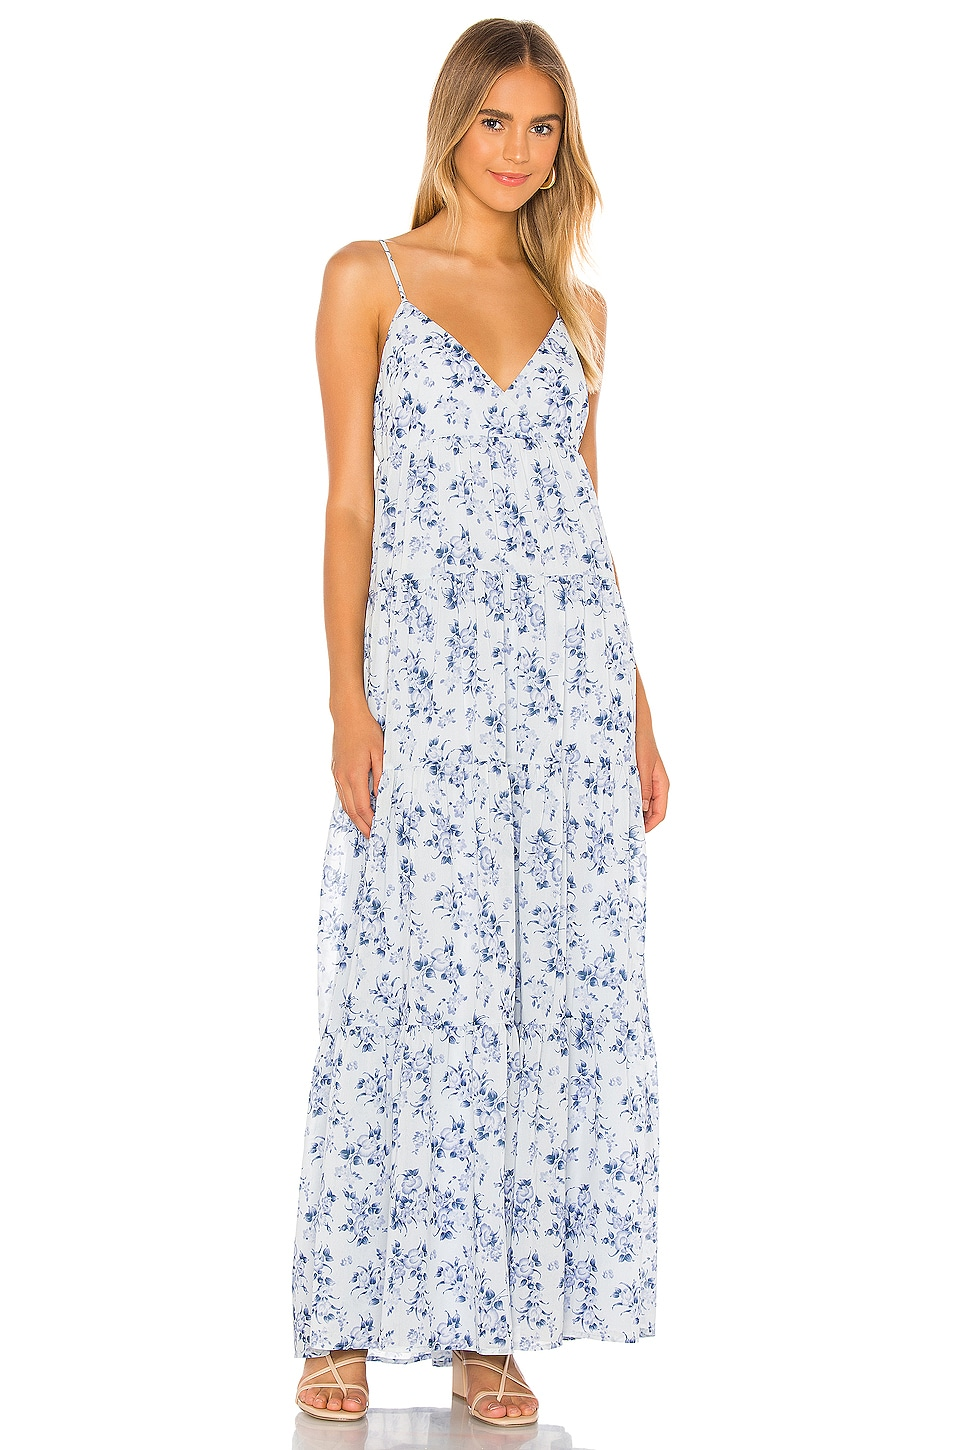 House Of Harlow 1960 X Revolve Janae Dress In Blue Floral Revolve Revolve lovers and friends black dress. house of harlow